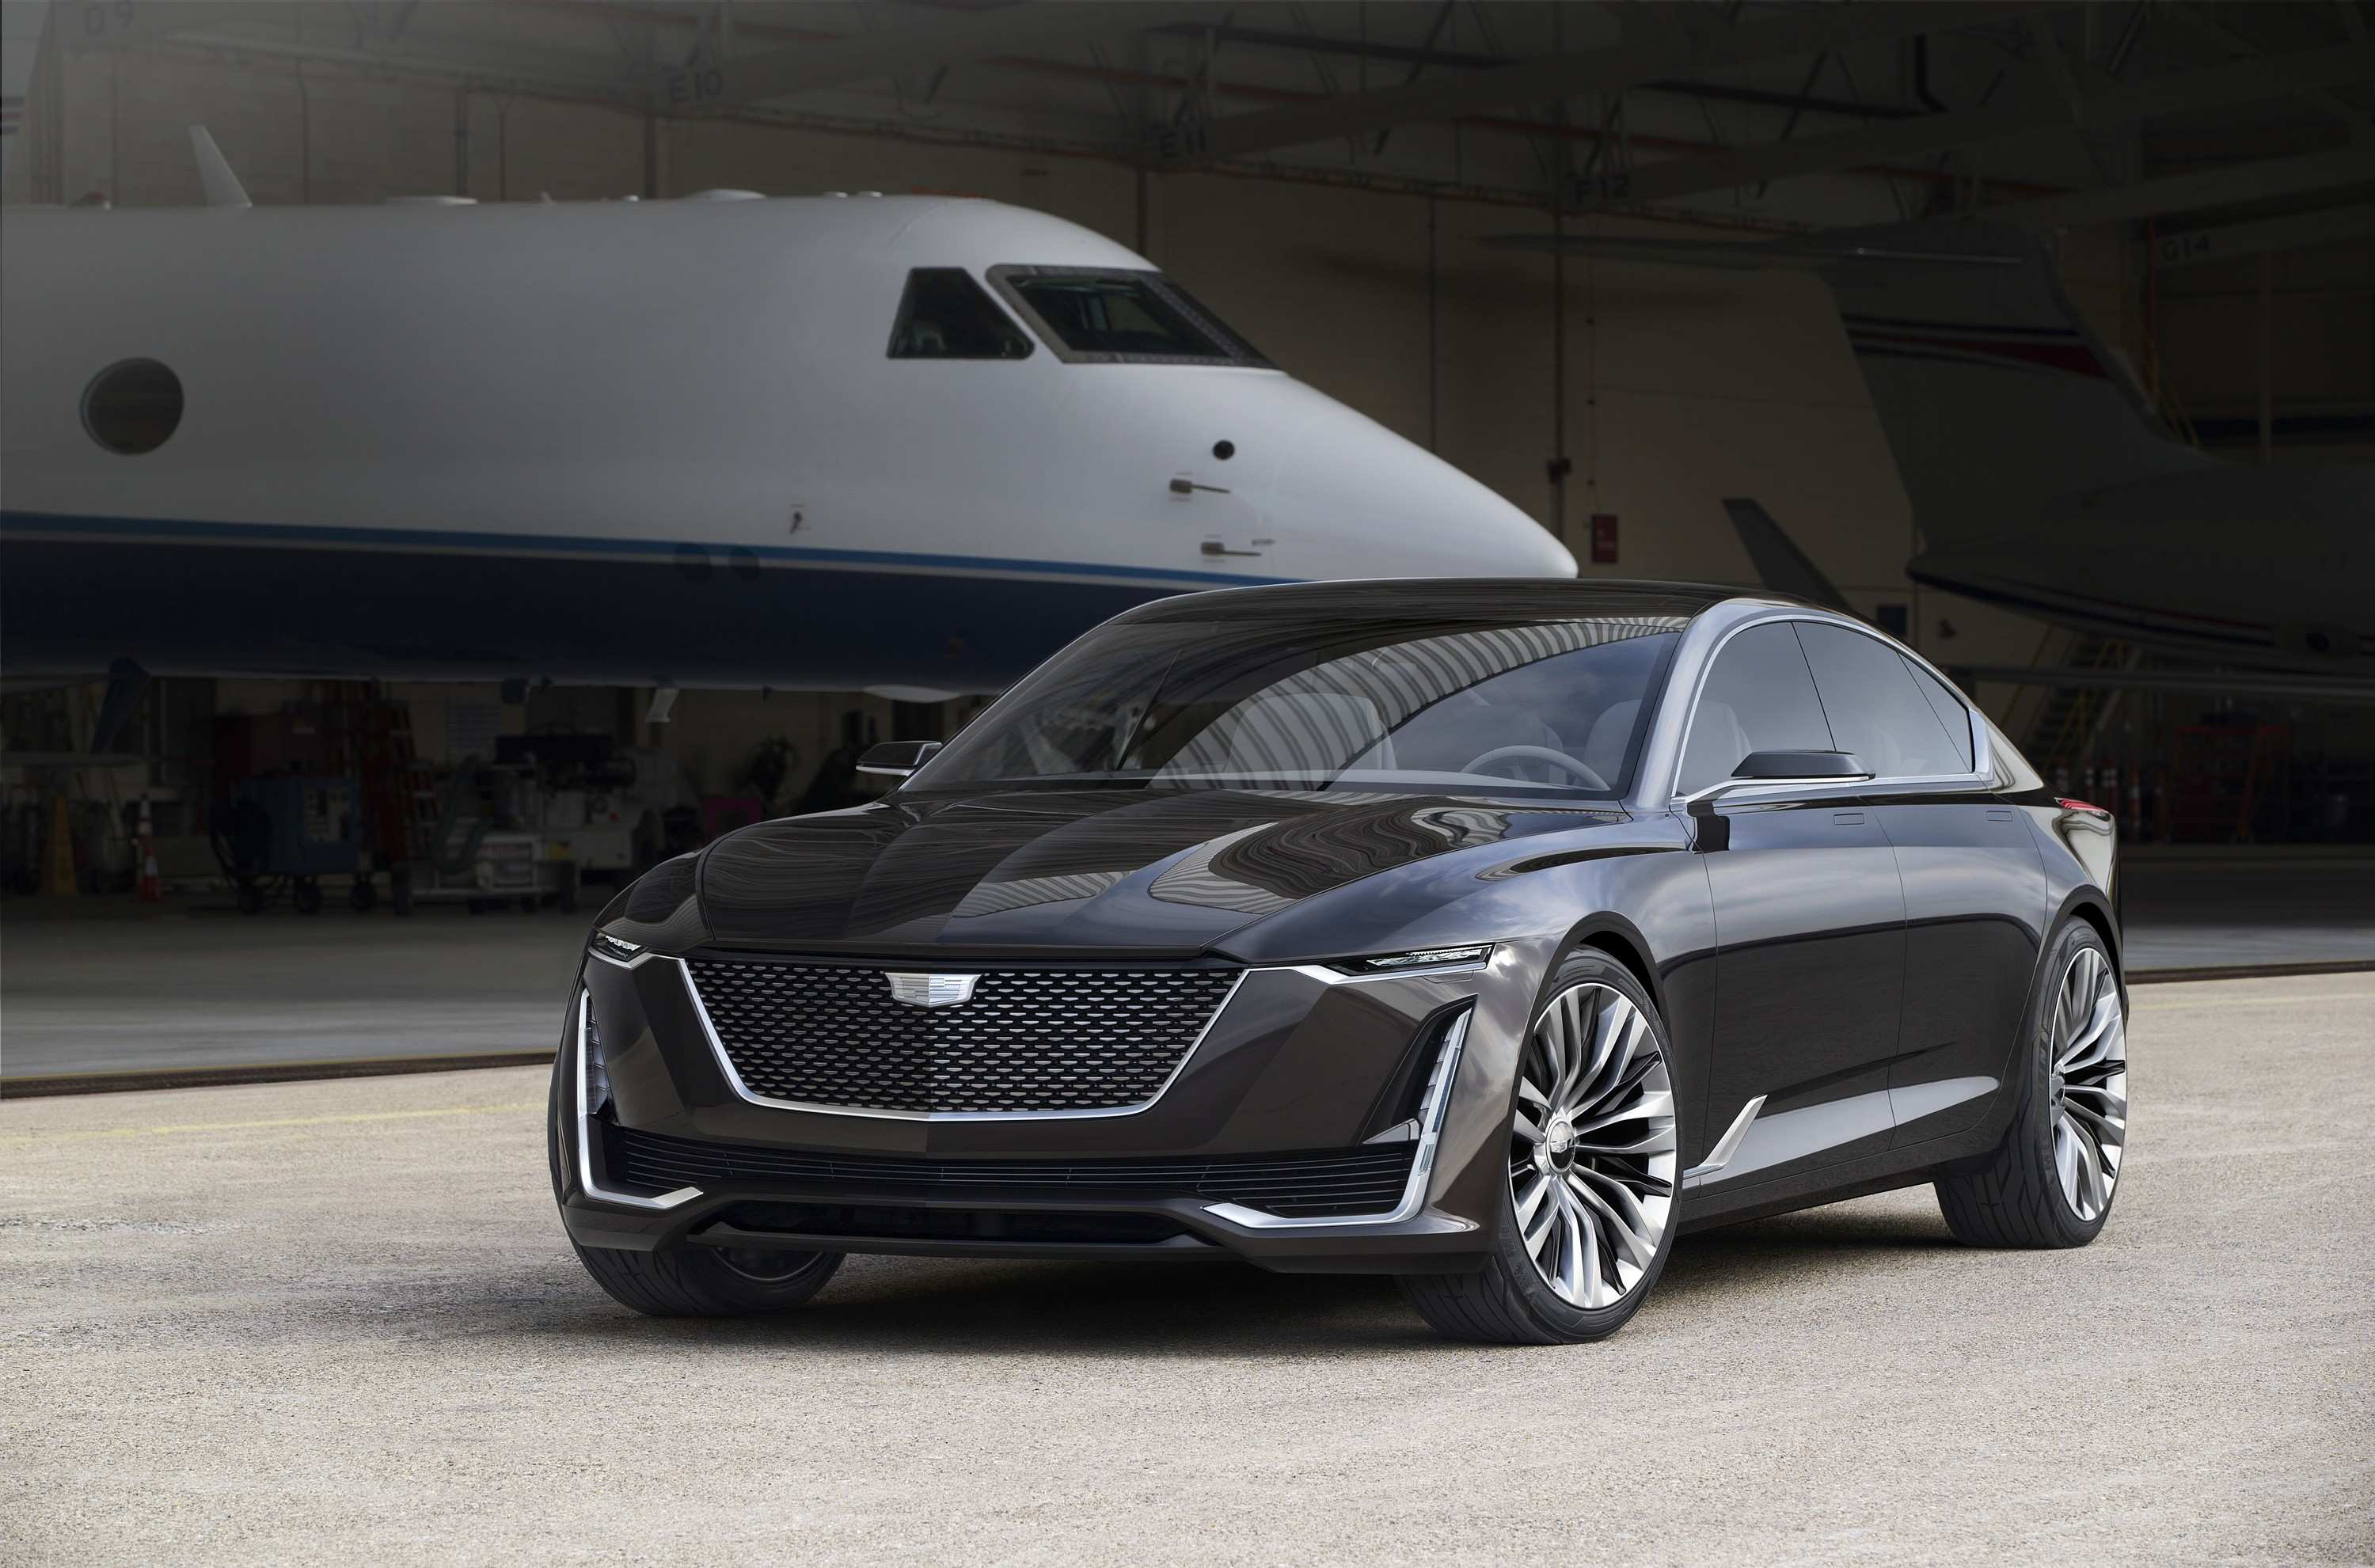 98 The 2020 Cadillac Cts Style for 2020 Cadillac Cts